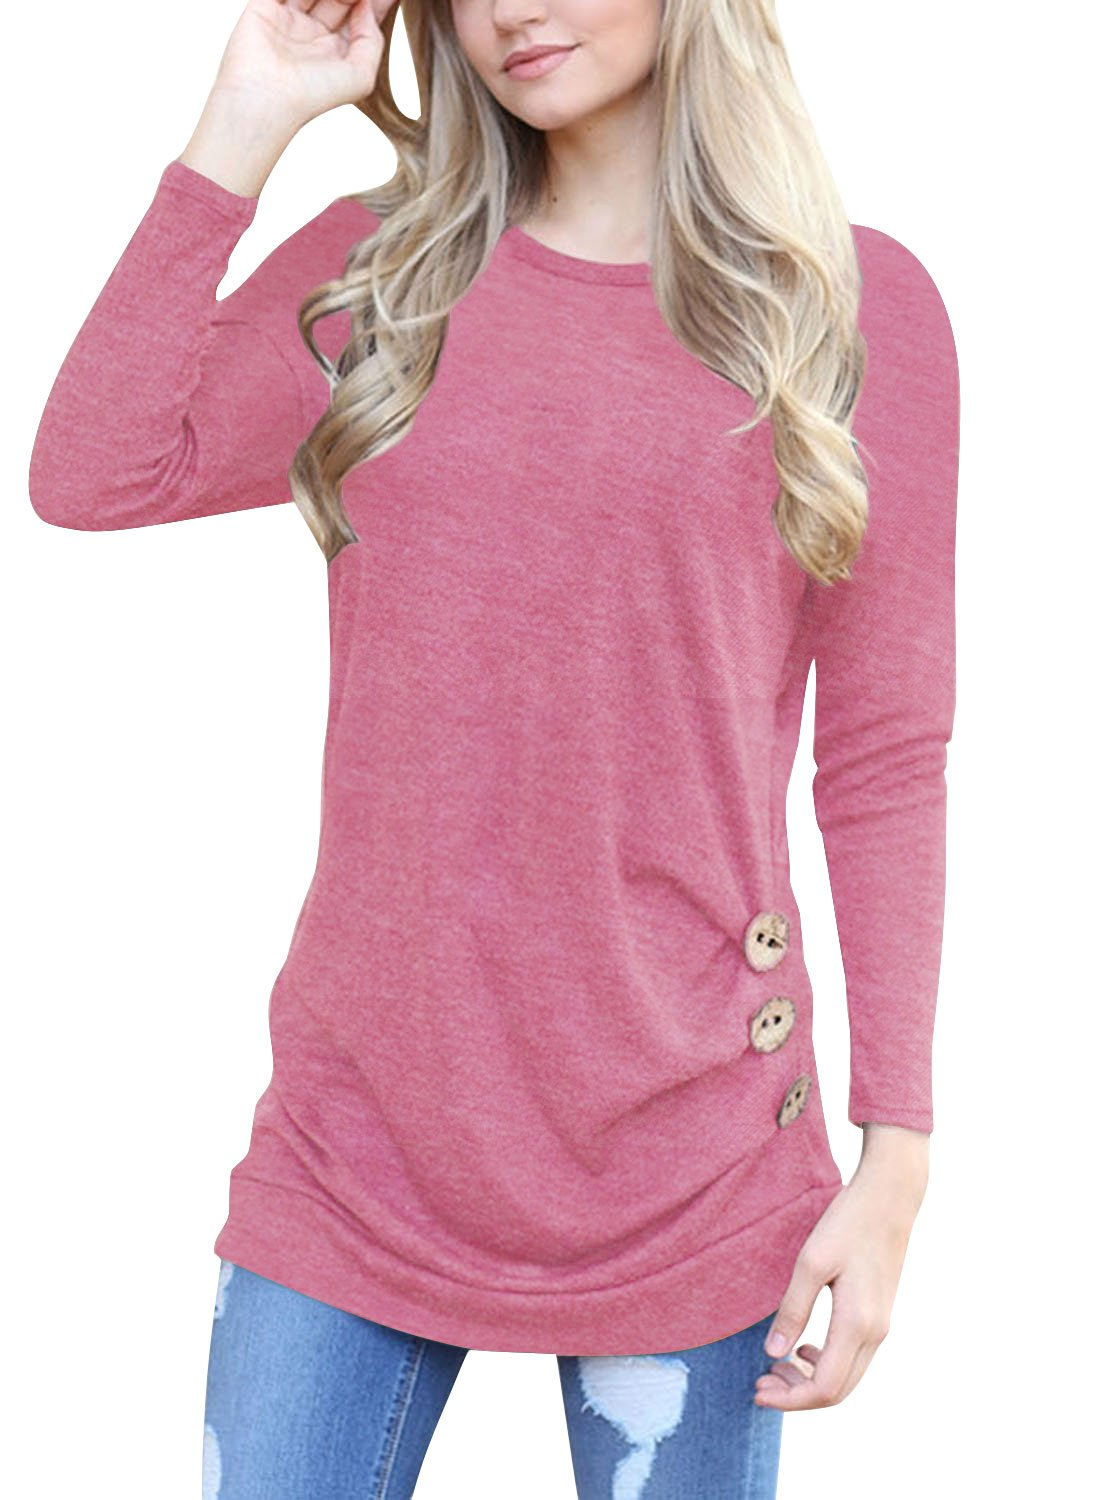 Juniors Tops Casual Long Sleeve T Shirts Buttons Decor Crew Neck Tunic Blouse Pink Large